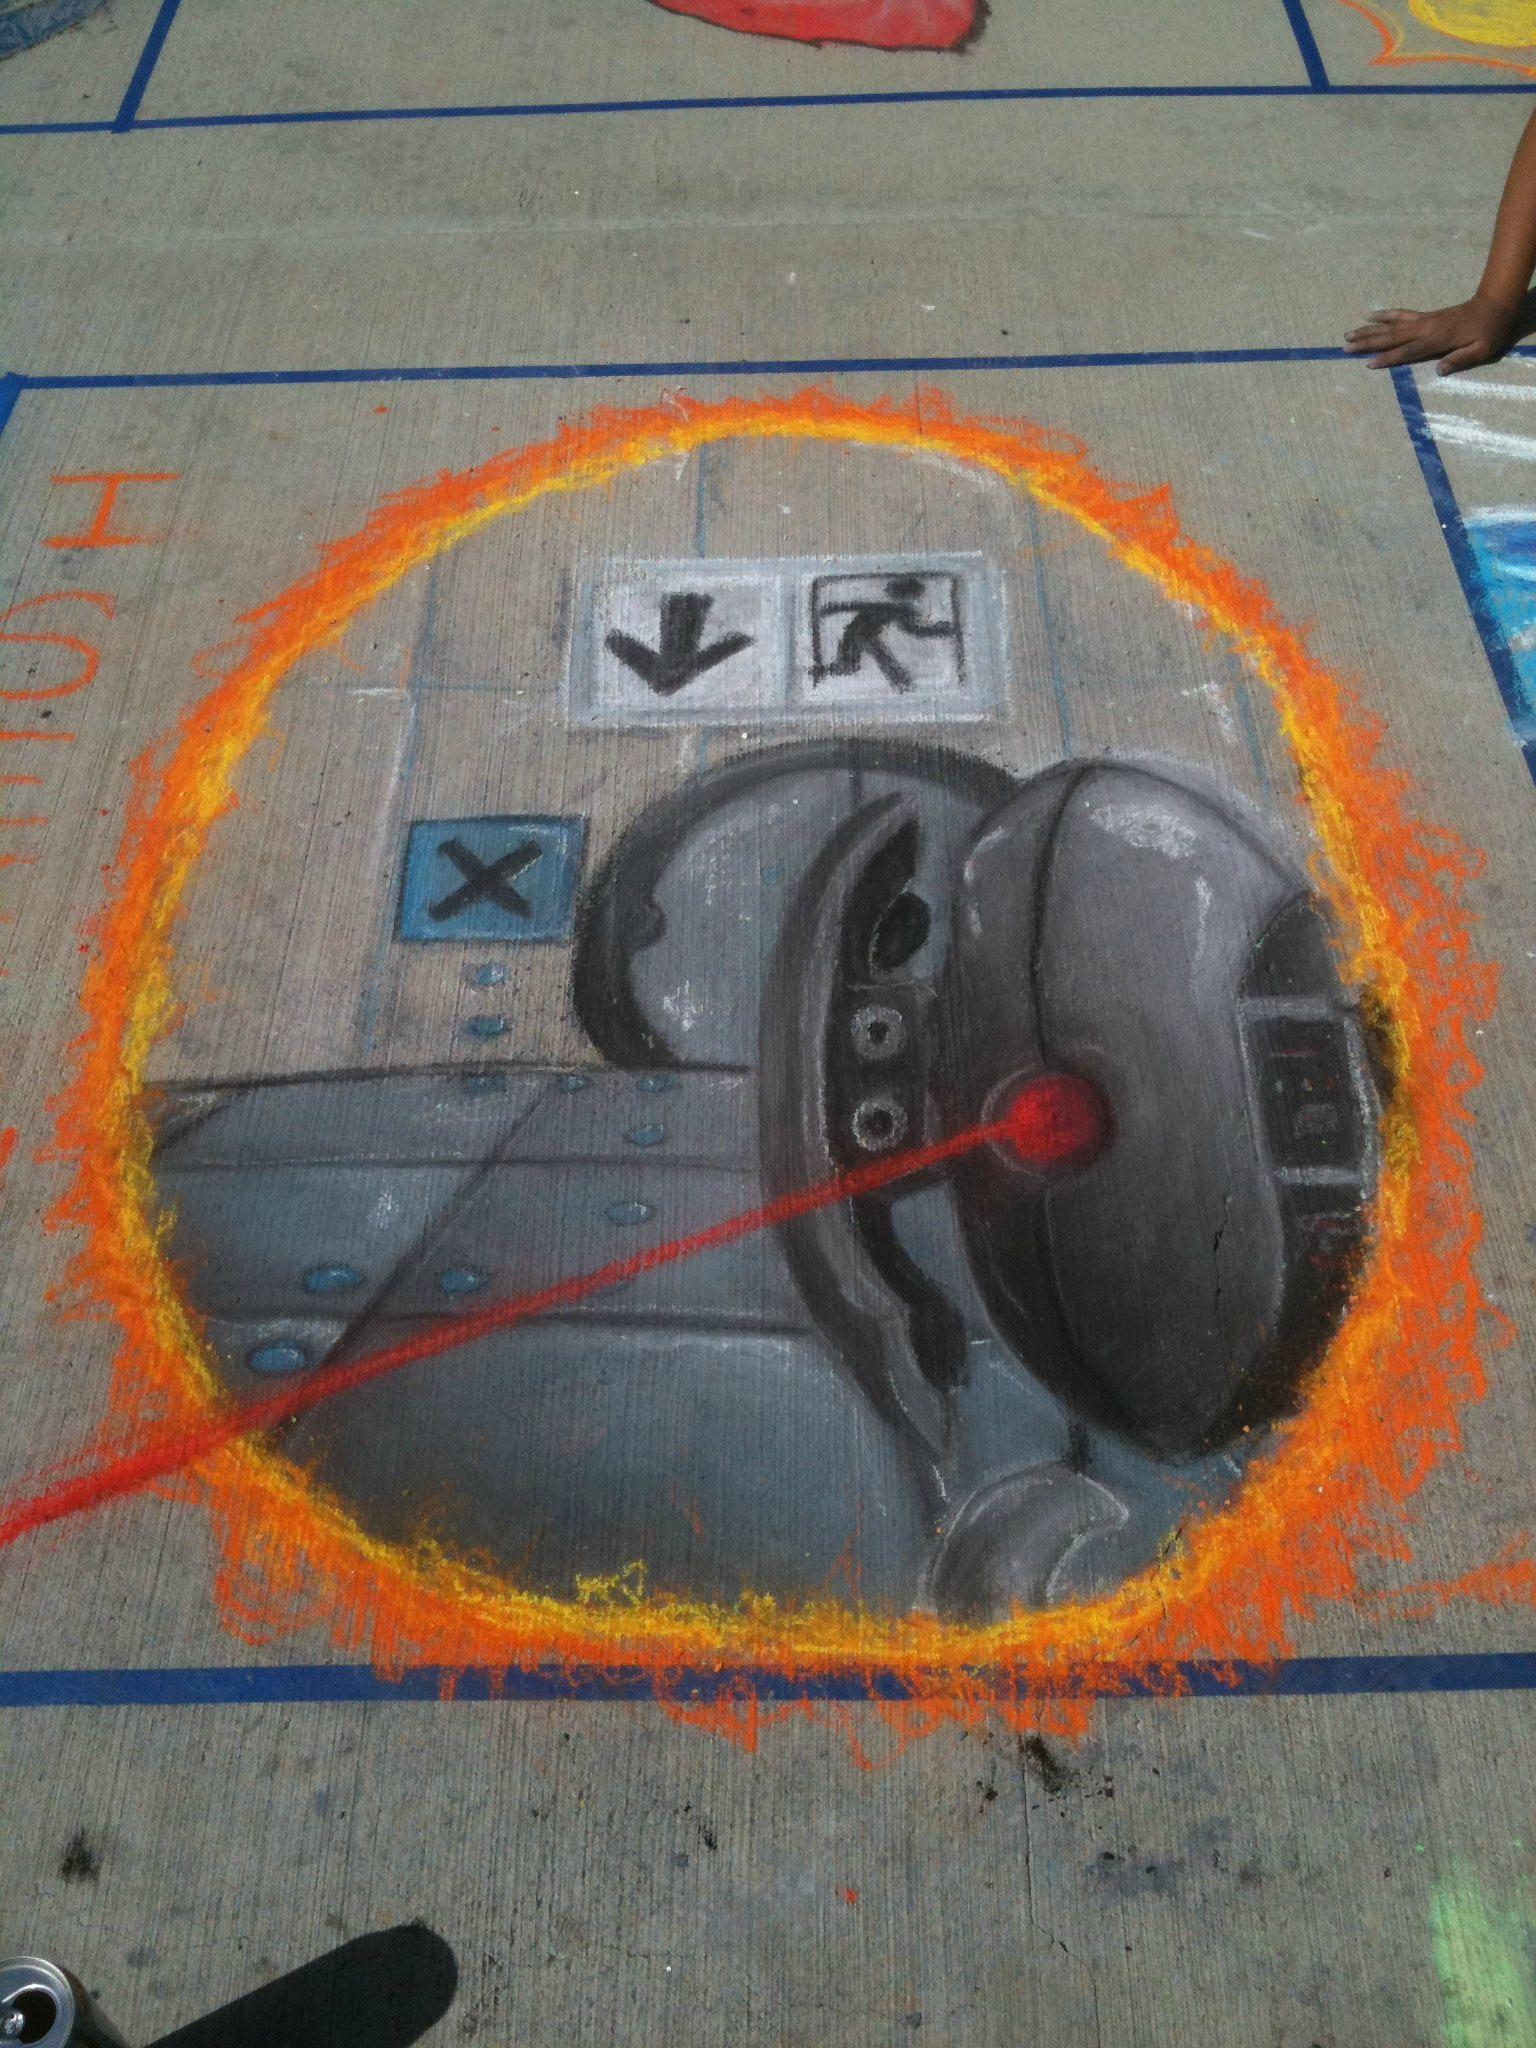 Today my school held an event where students drew on the sidewalks with pastels. One student drew this.